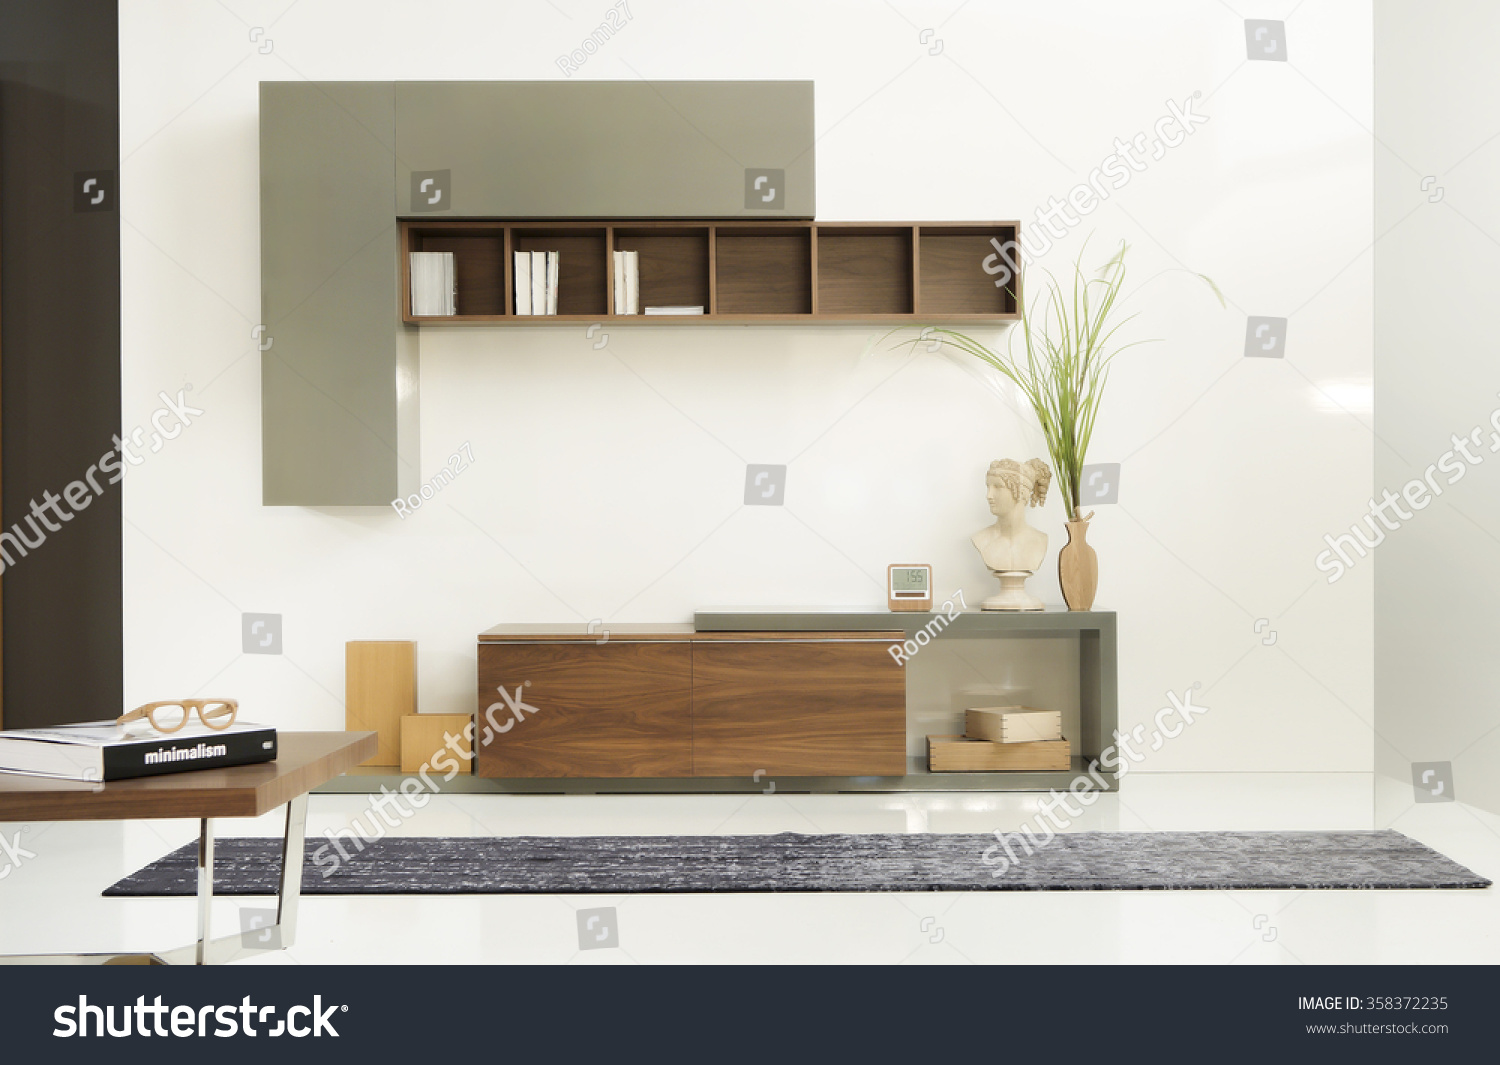 New furniture line modern design straight lines materials wood